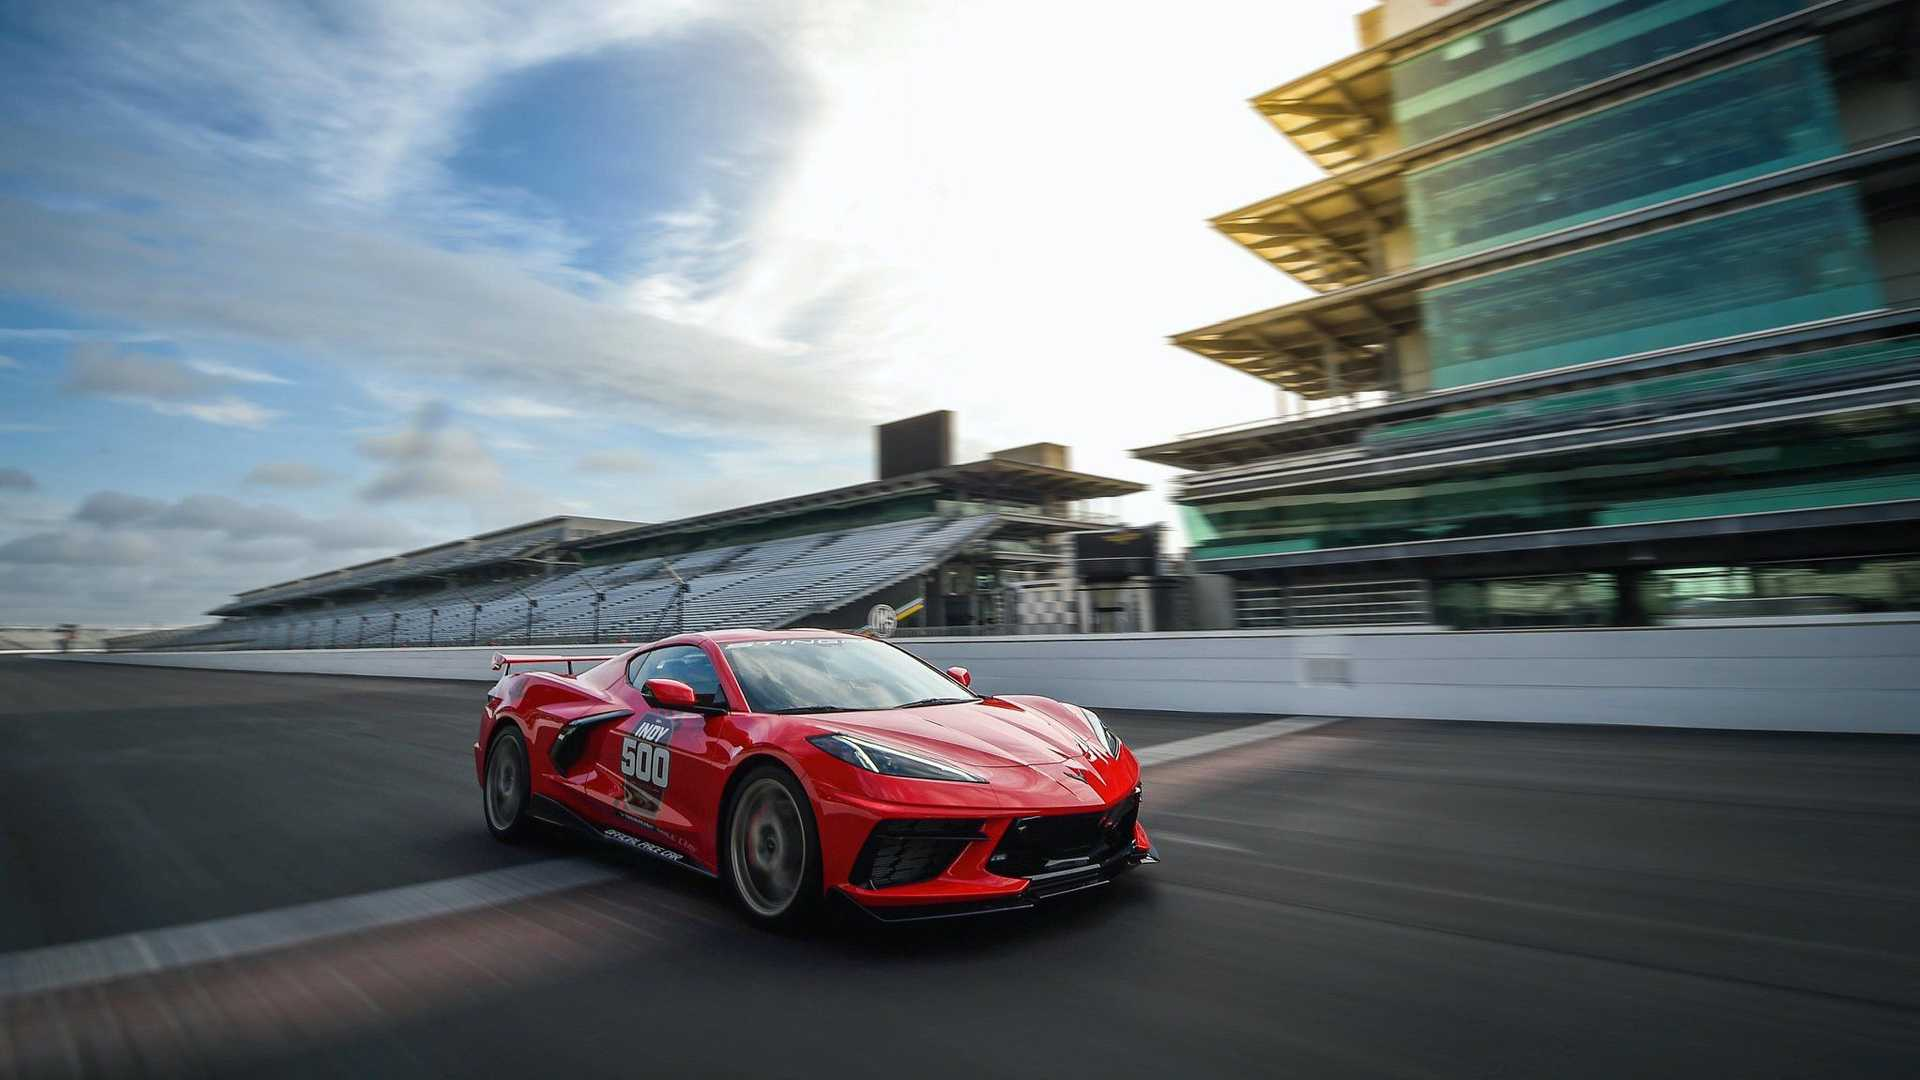 2019 - [Chevrolet] Corvette C8 Stingray - Page 7 2020-chevy-corvette-c8-indianapolis-500-pace-car-moving